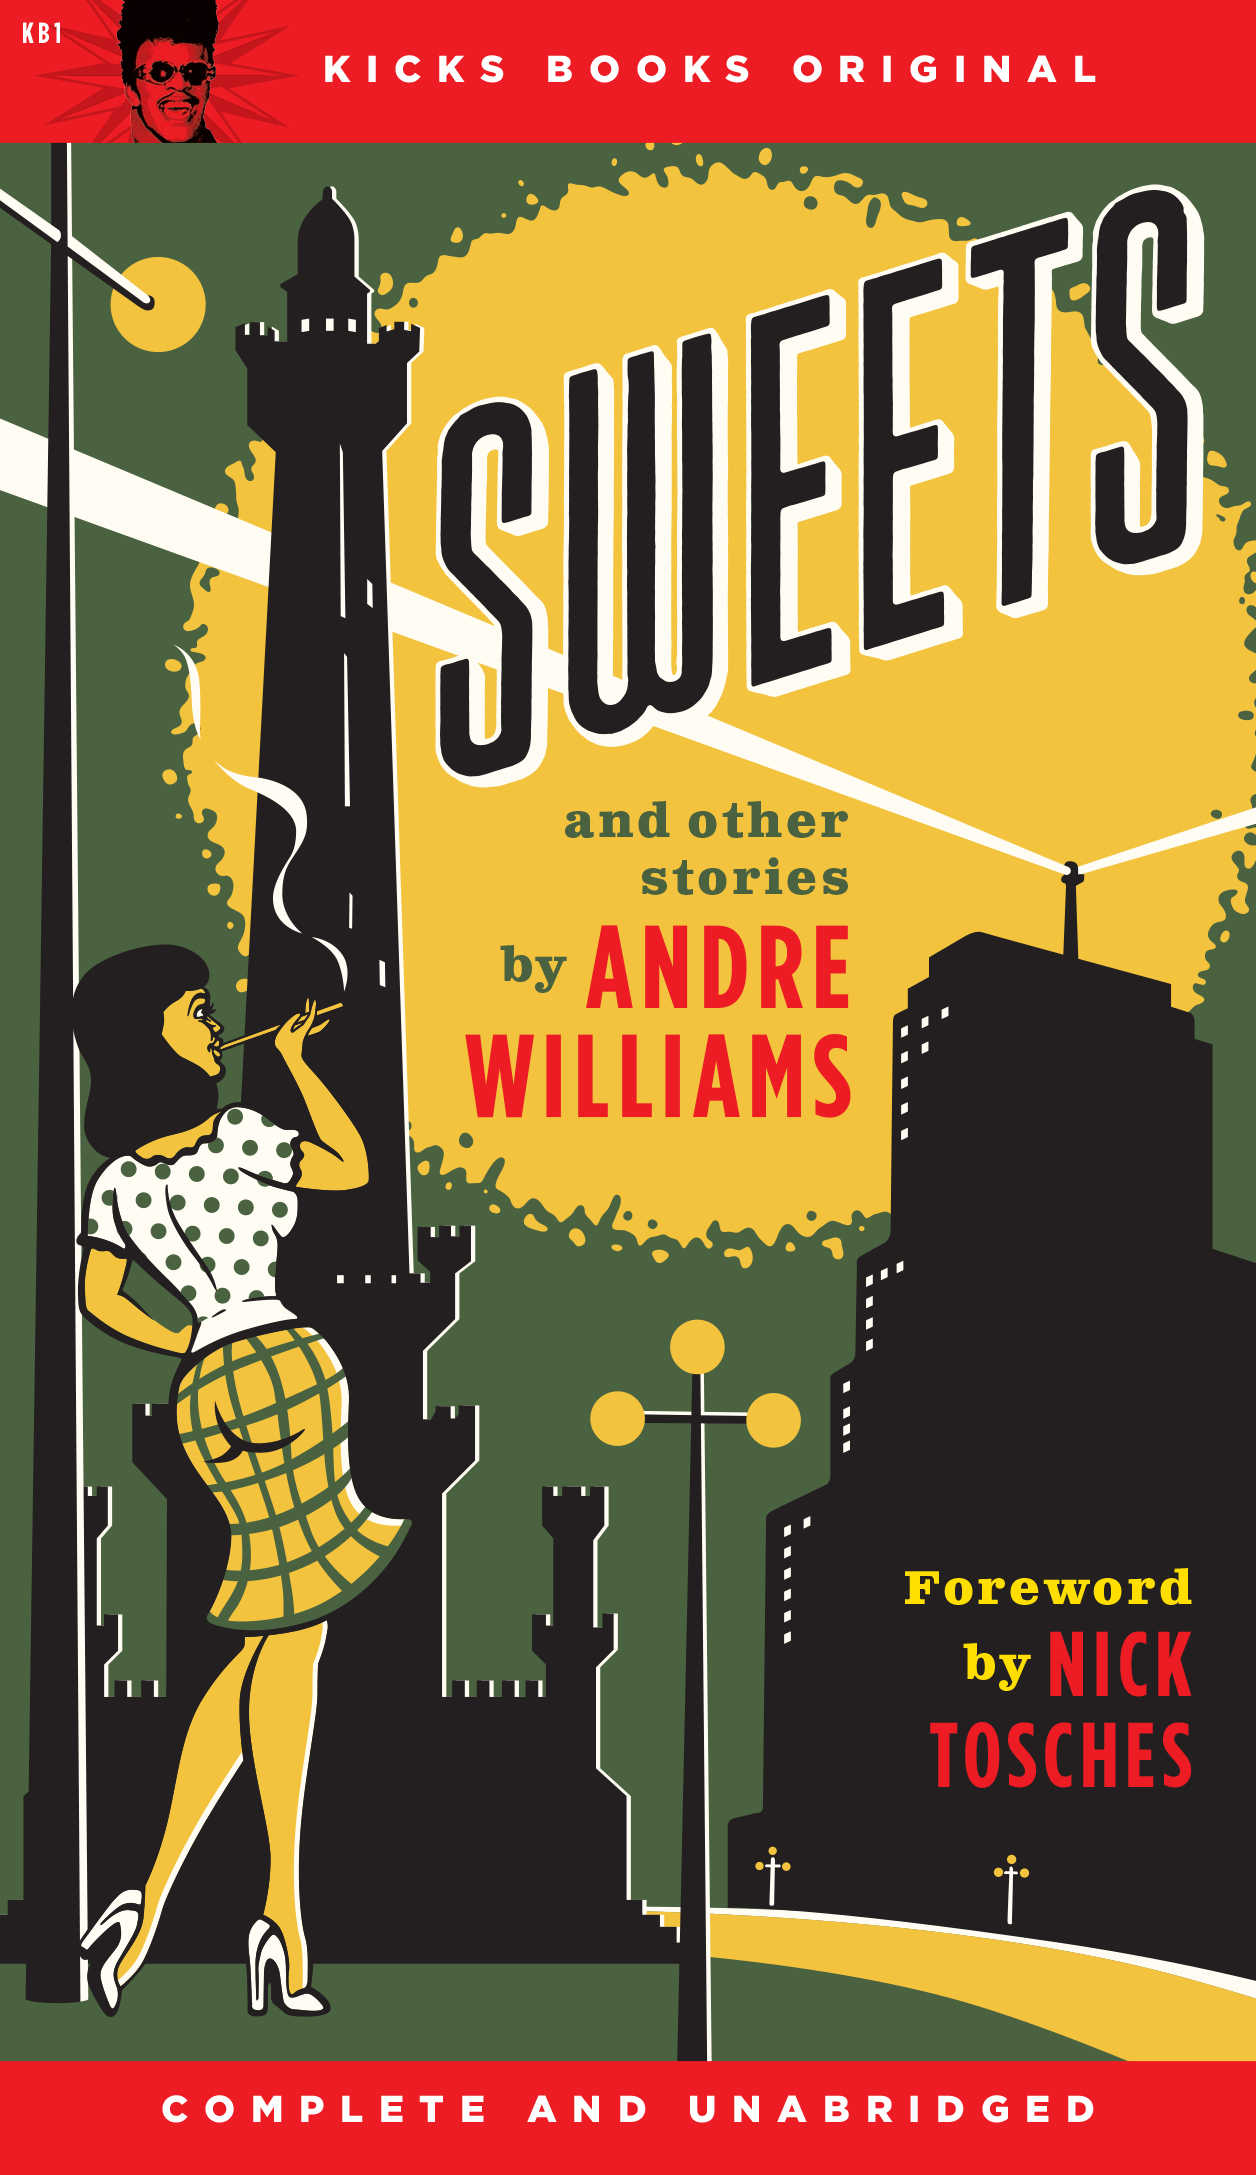 Andre Williams - Sweets cover